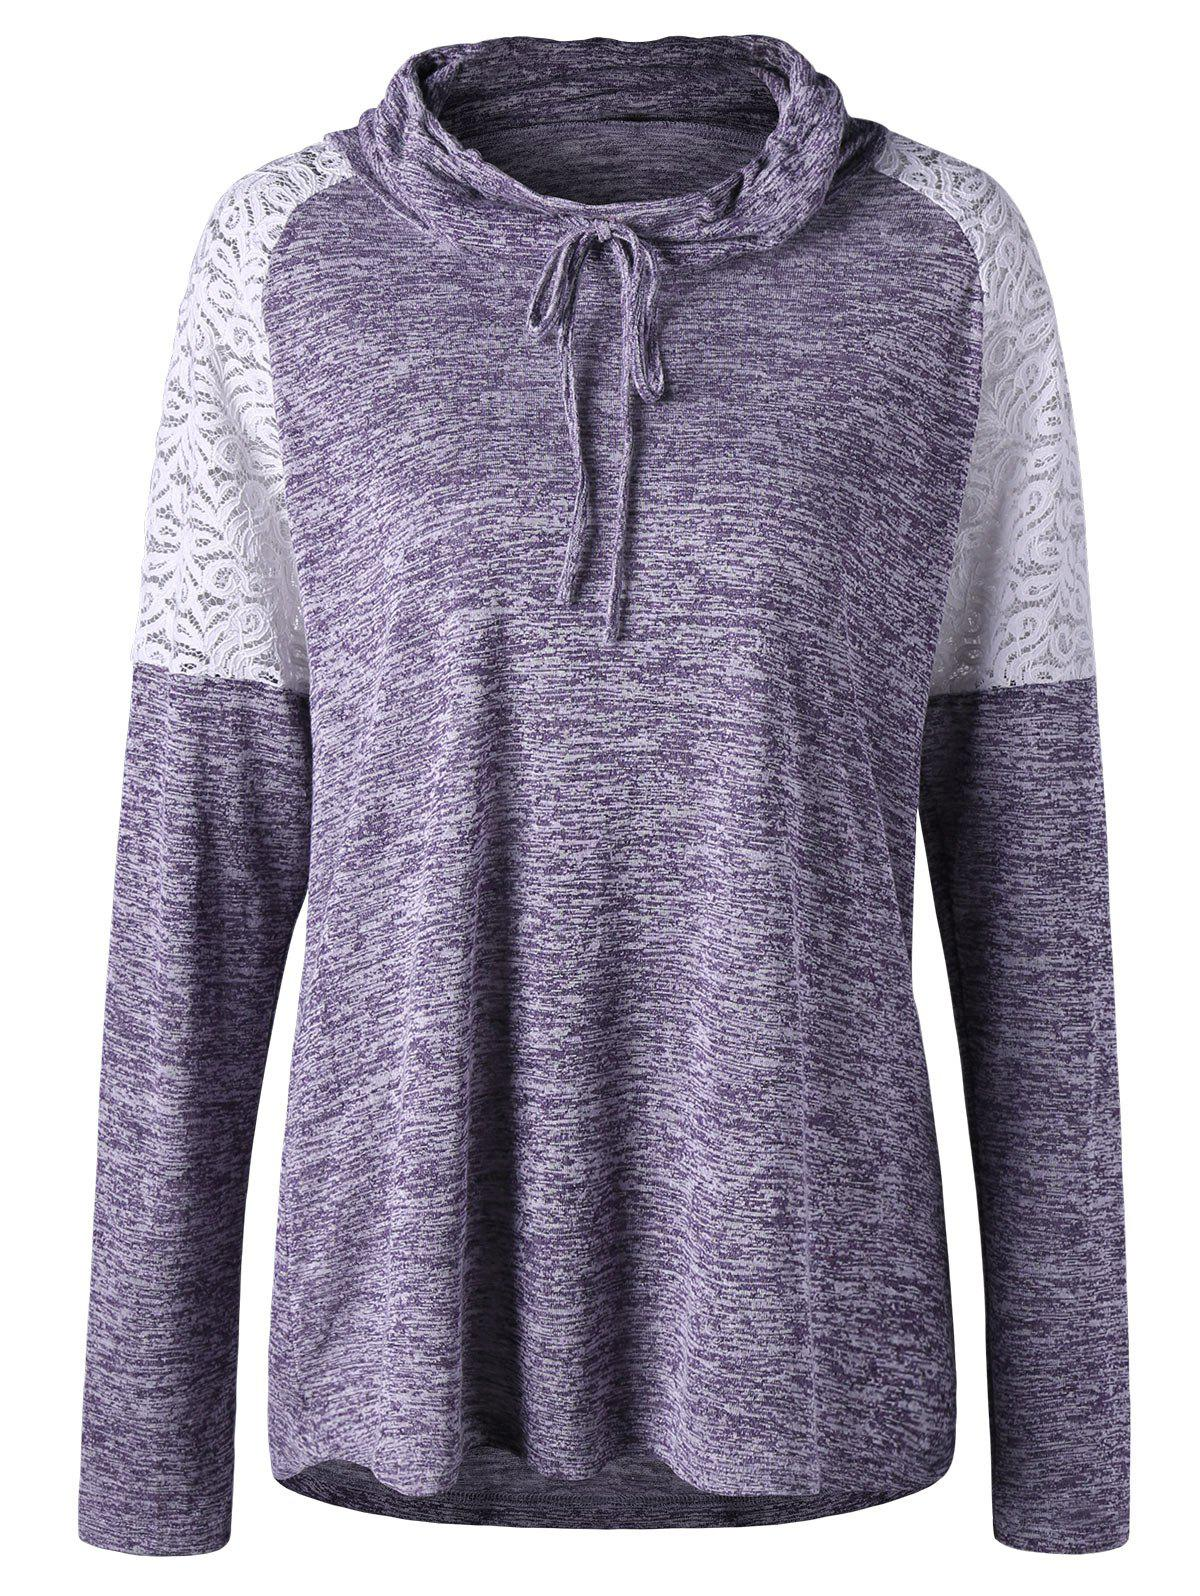 Plus Size Heather Lace Insert TopWOMEN<br><br>Size: 4XL; Color: PURPLE; Material: Polyester,Spandex; Shirt Length: Long; Sleeve Length: Full; Collar: Cowl Neck; Style: Casual; Season: Fall,Spring,Summer; Embellishment: Lace; Pattern Type: Others; Weight: 0.2800kg; Package Contents: 1 x Top;